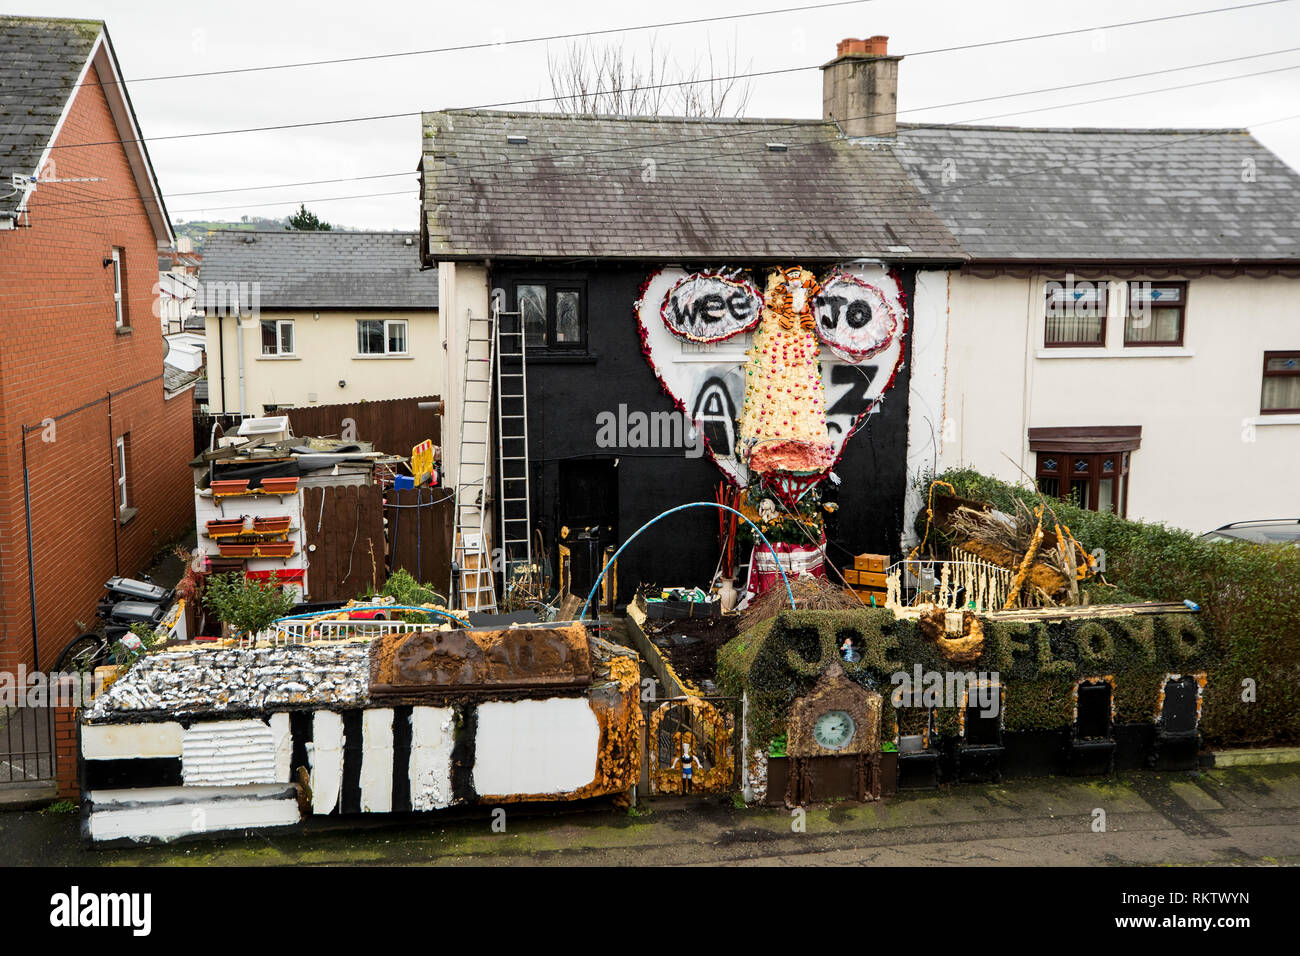 The garden of plumber joesph floyds east belfast home where recycles old furniture and things he has found to create a garden where he grows strawberries